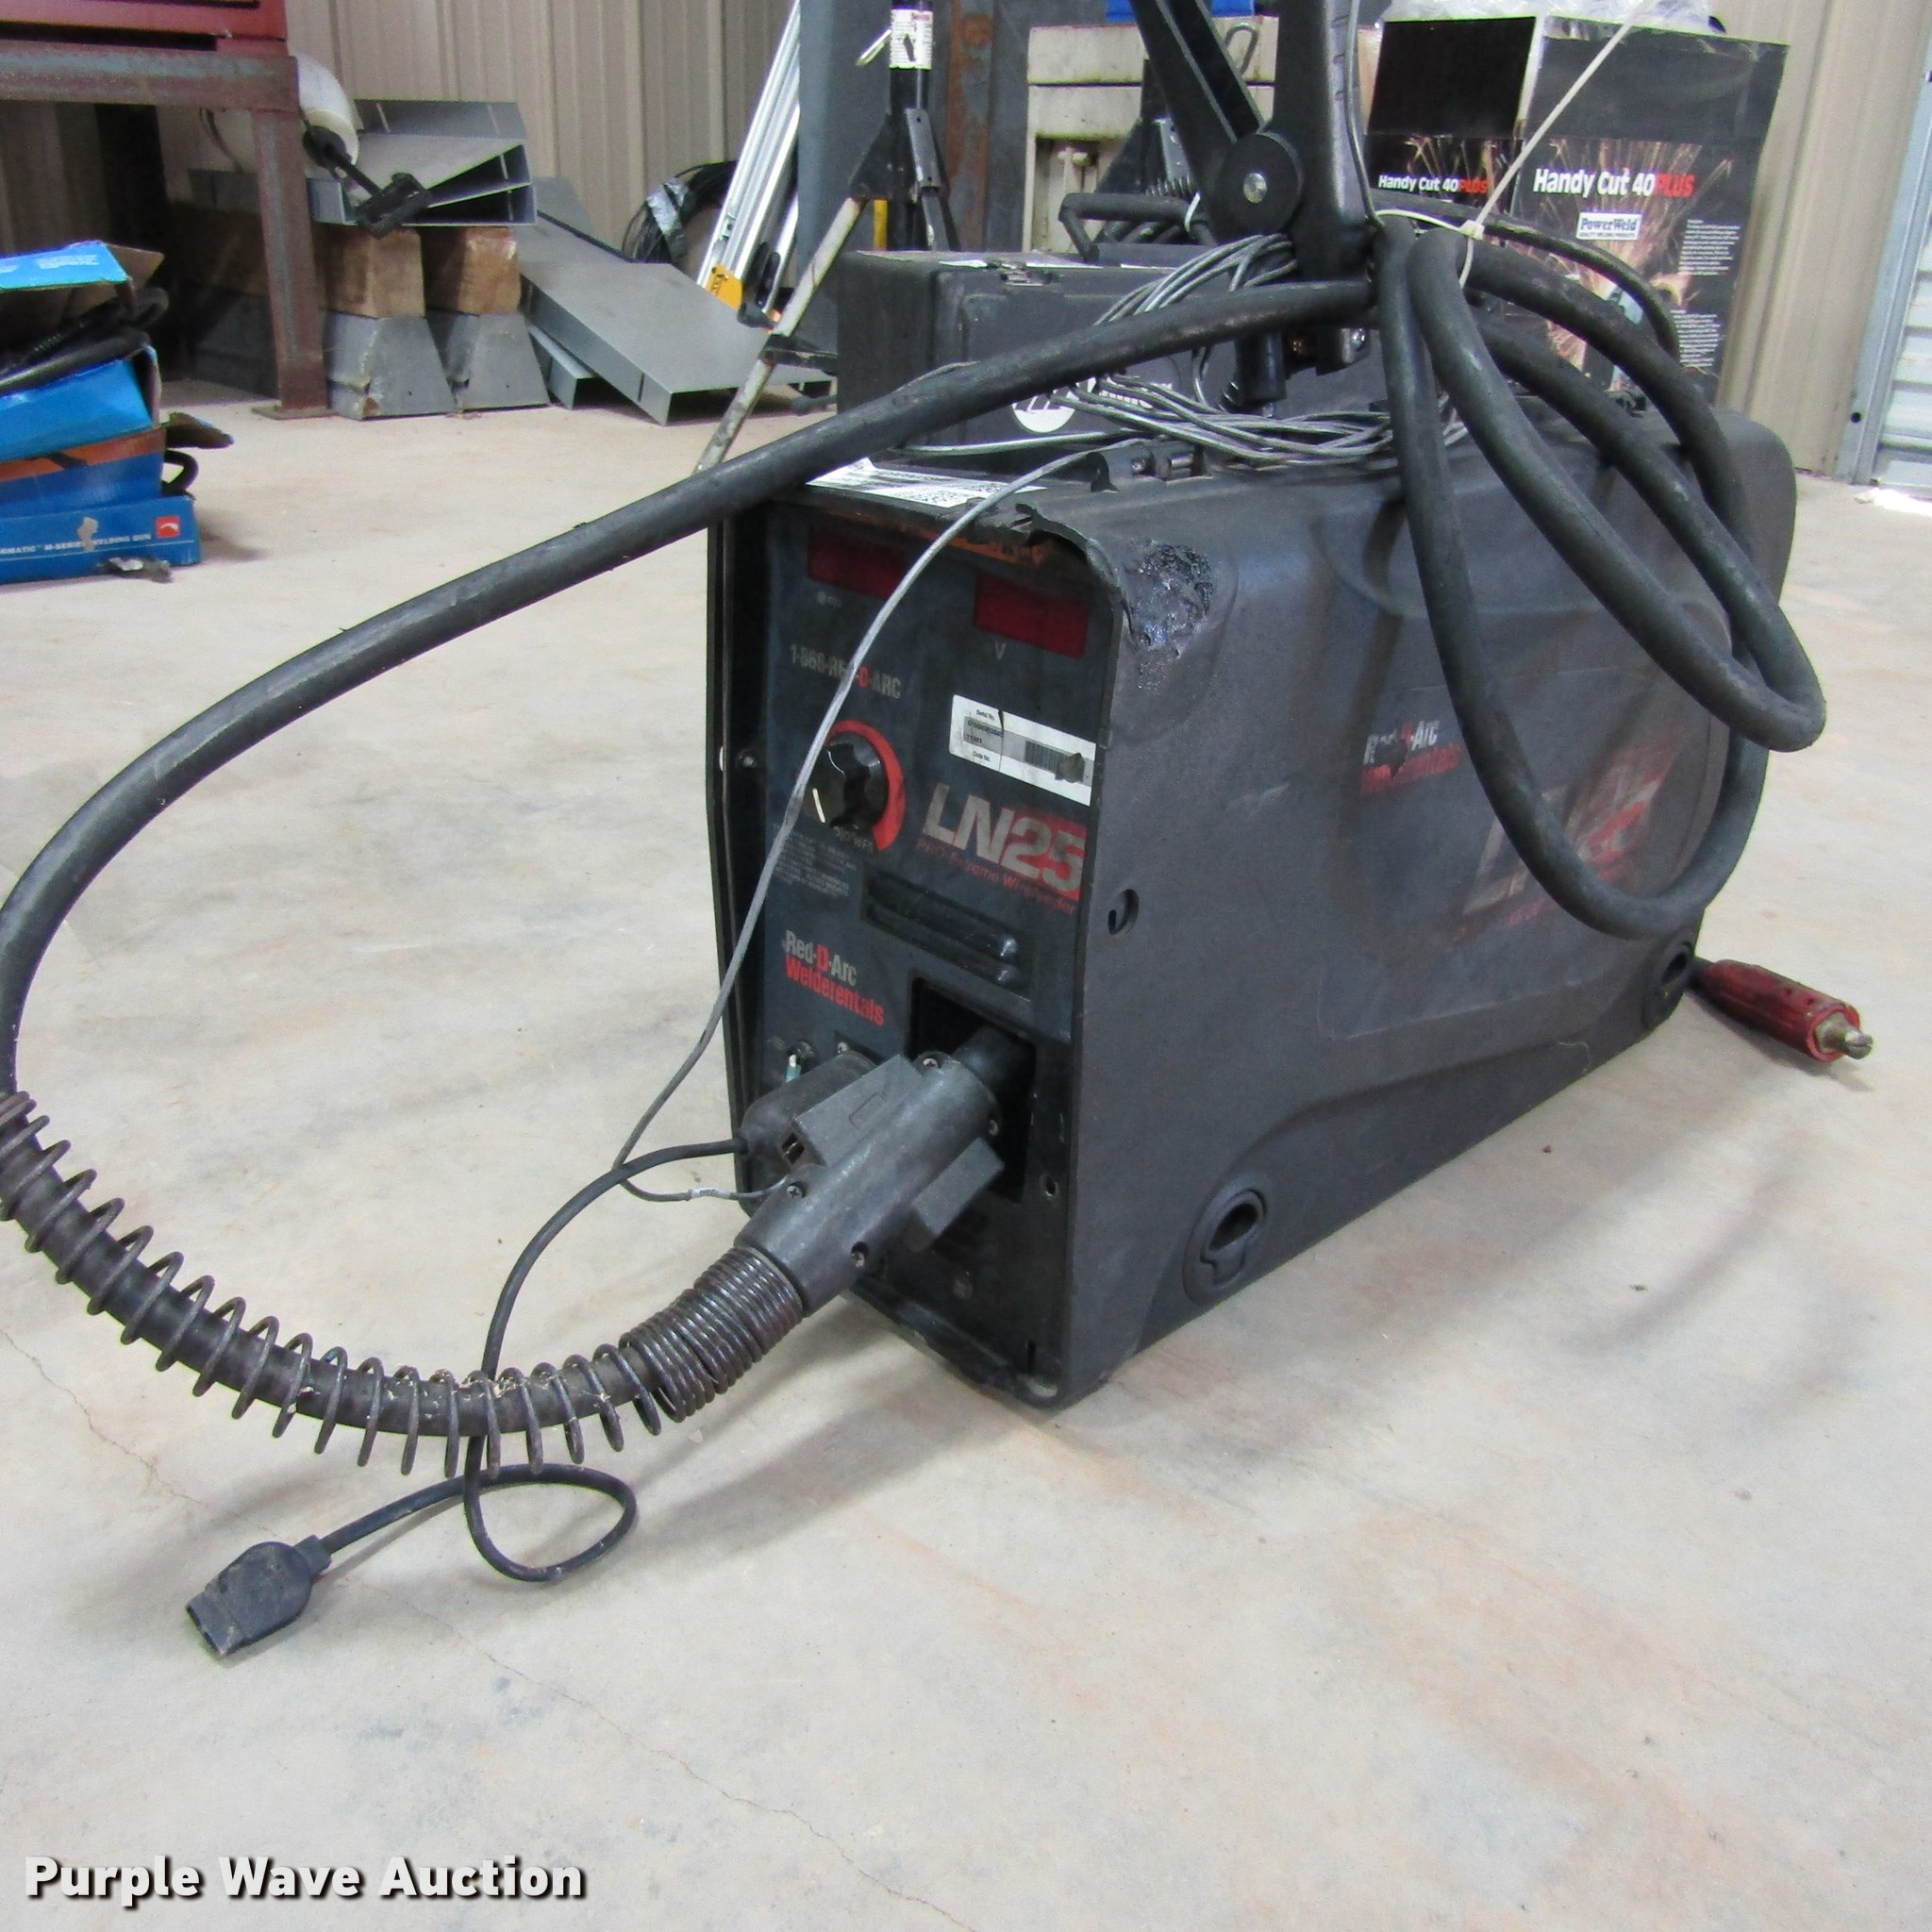 Red D Arc Ln25 Wire Welder Item Az9385 Sold November 29 Wiring A Full Size In New Window